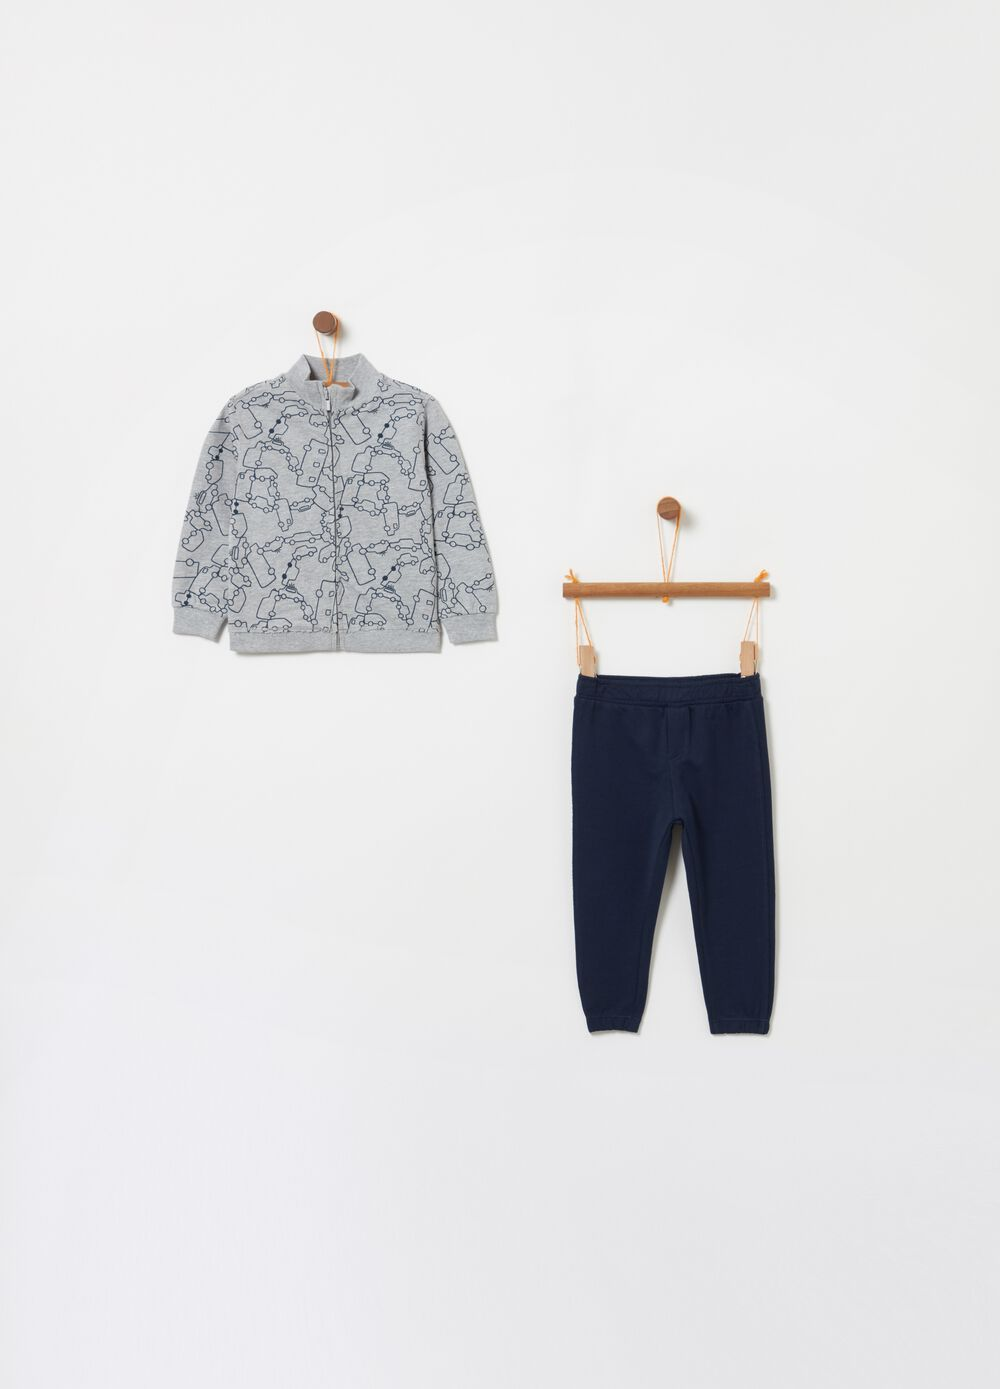 Jogging set with full-zip top and trousers with print